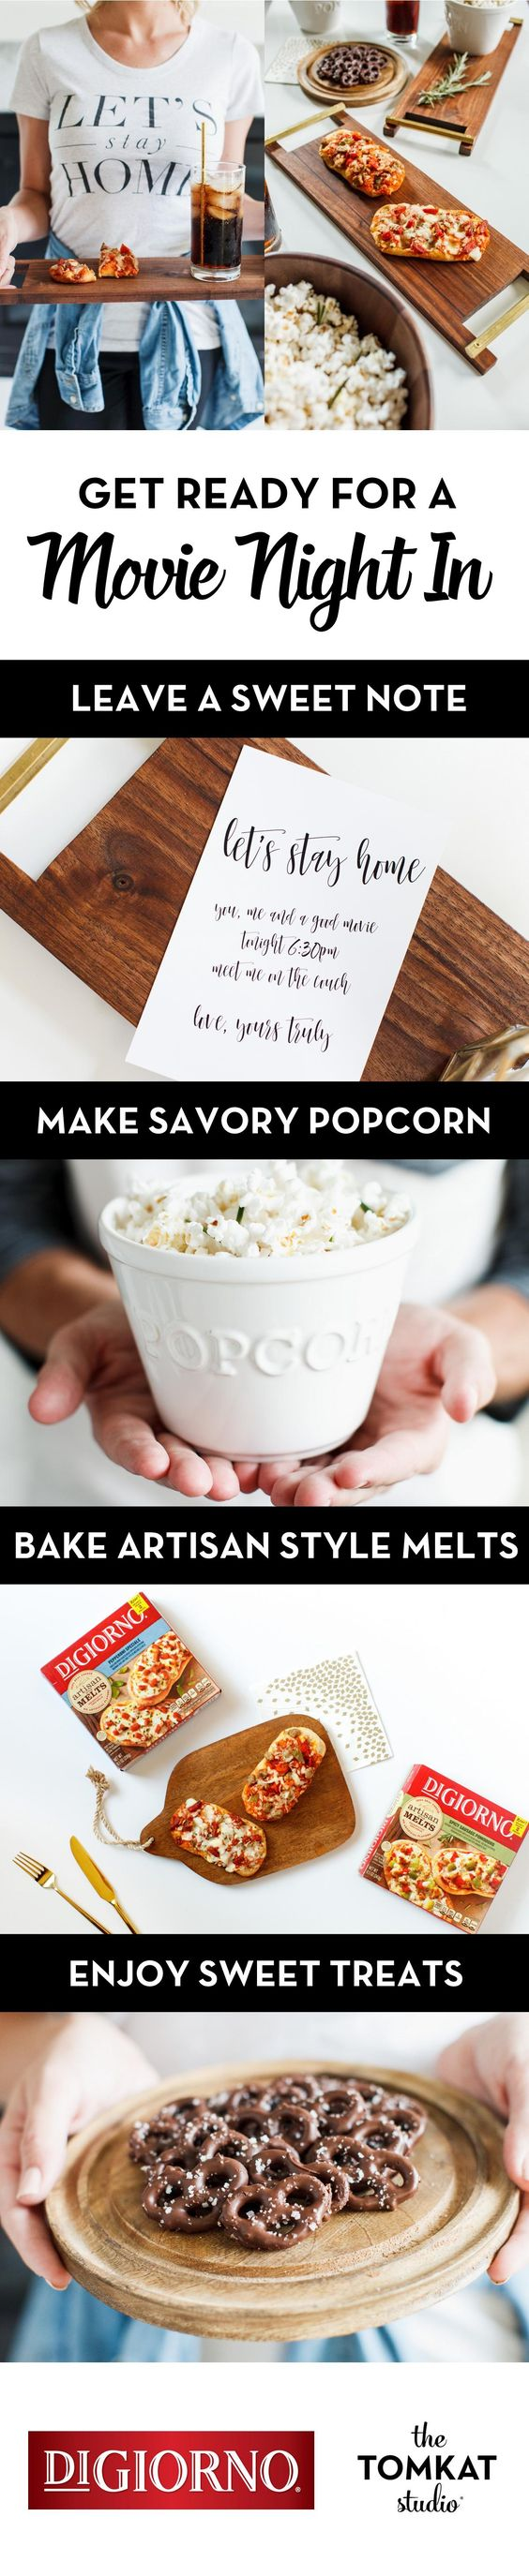 Creative ideas for a date at home